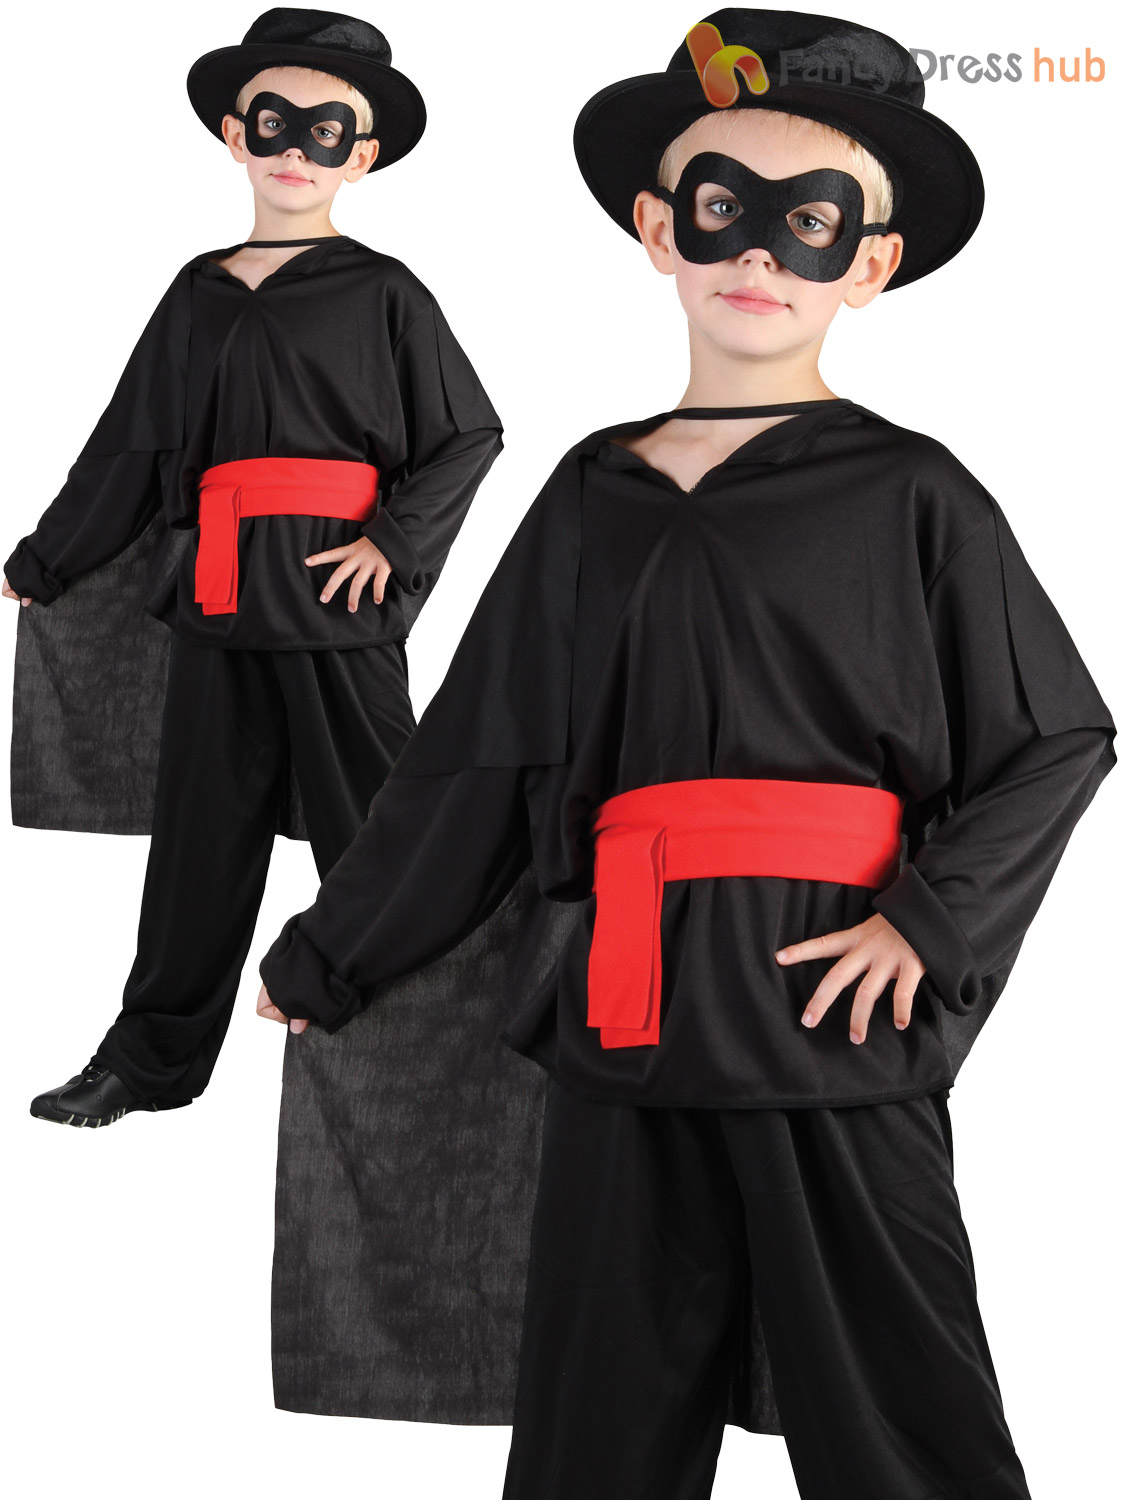 childrens kids bandit fancy dress costume lone ranger zorro outfit